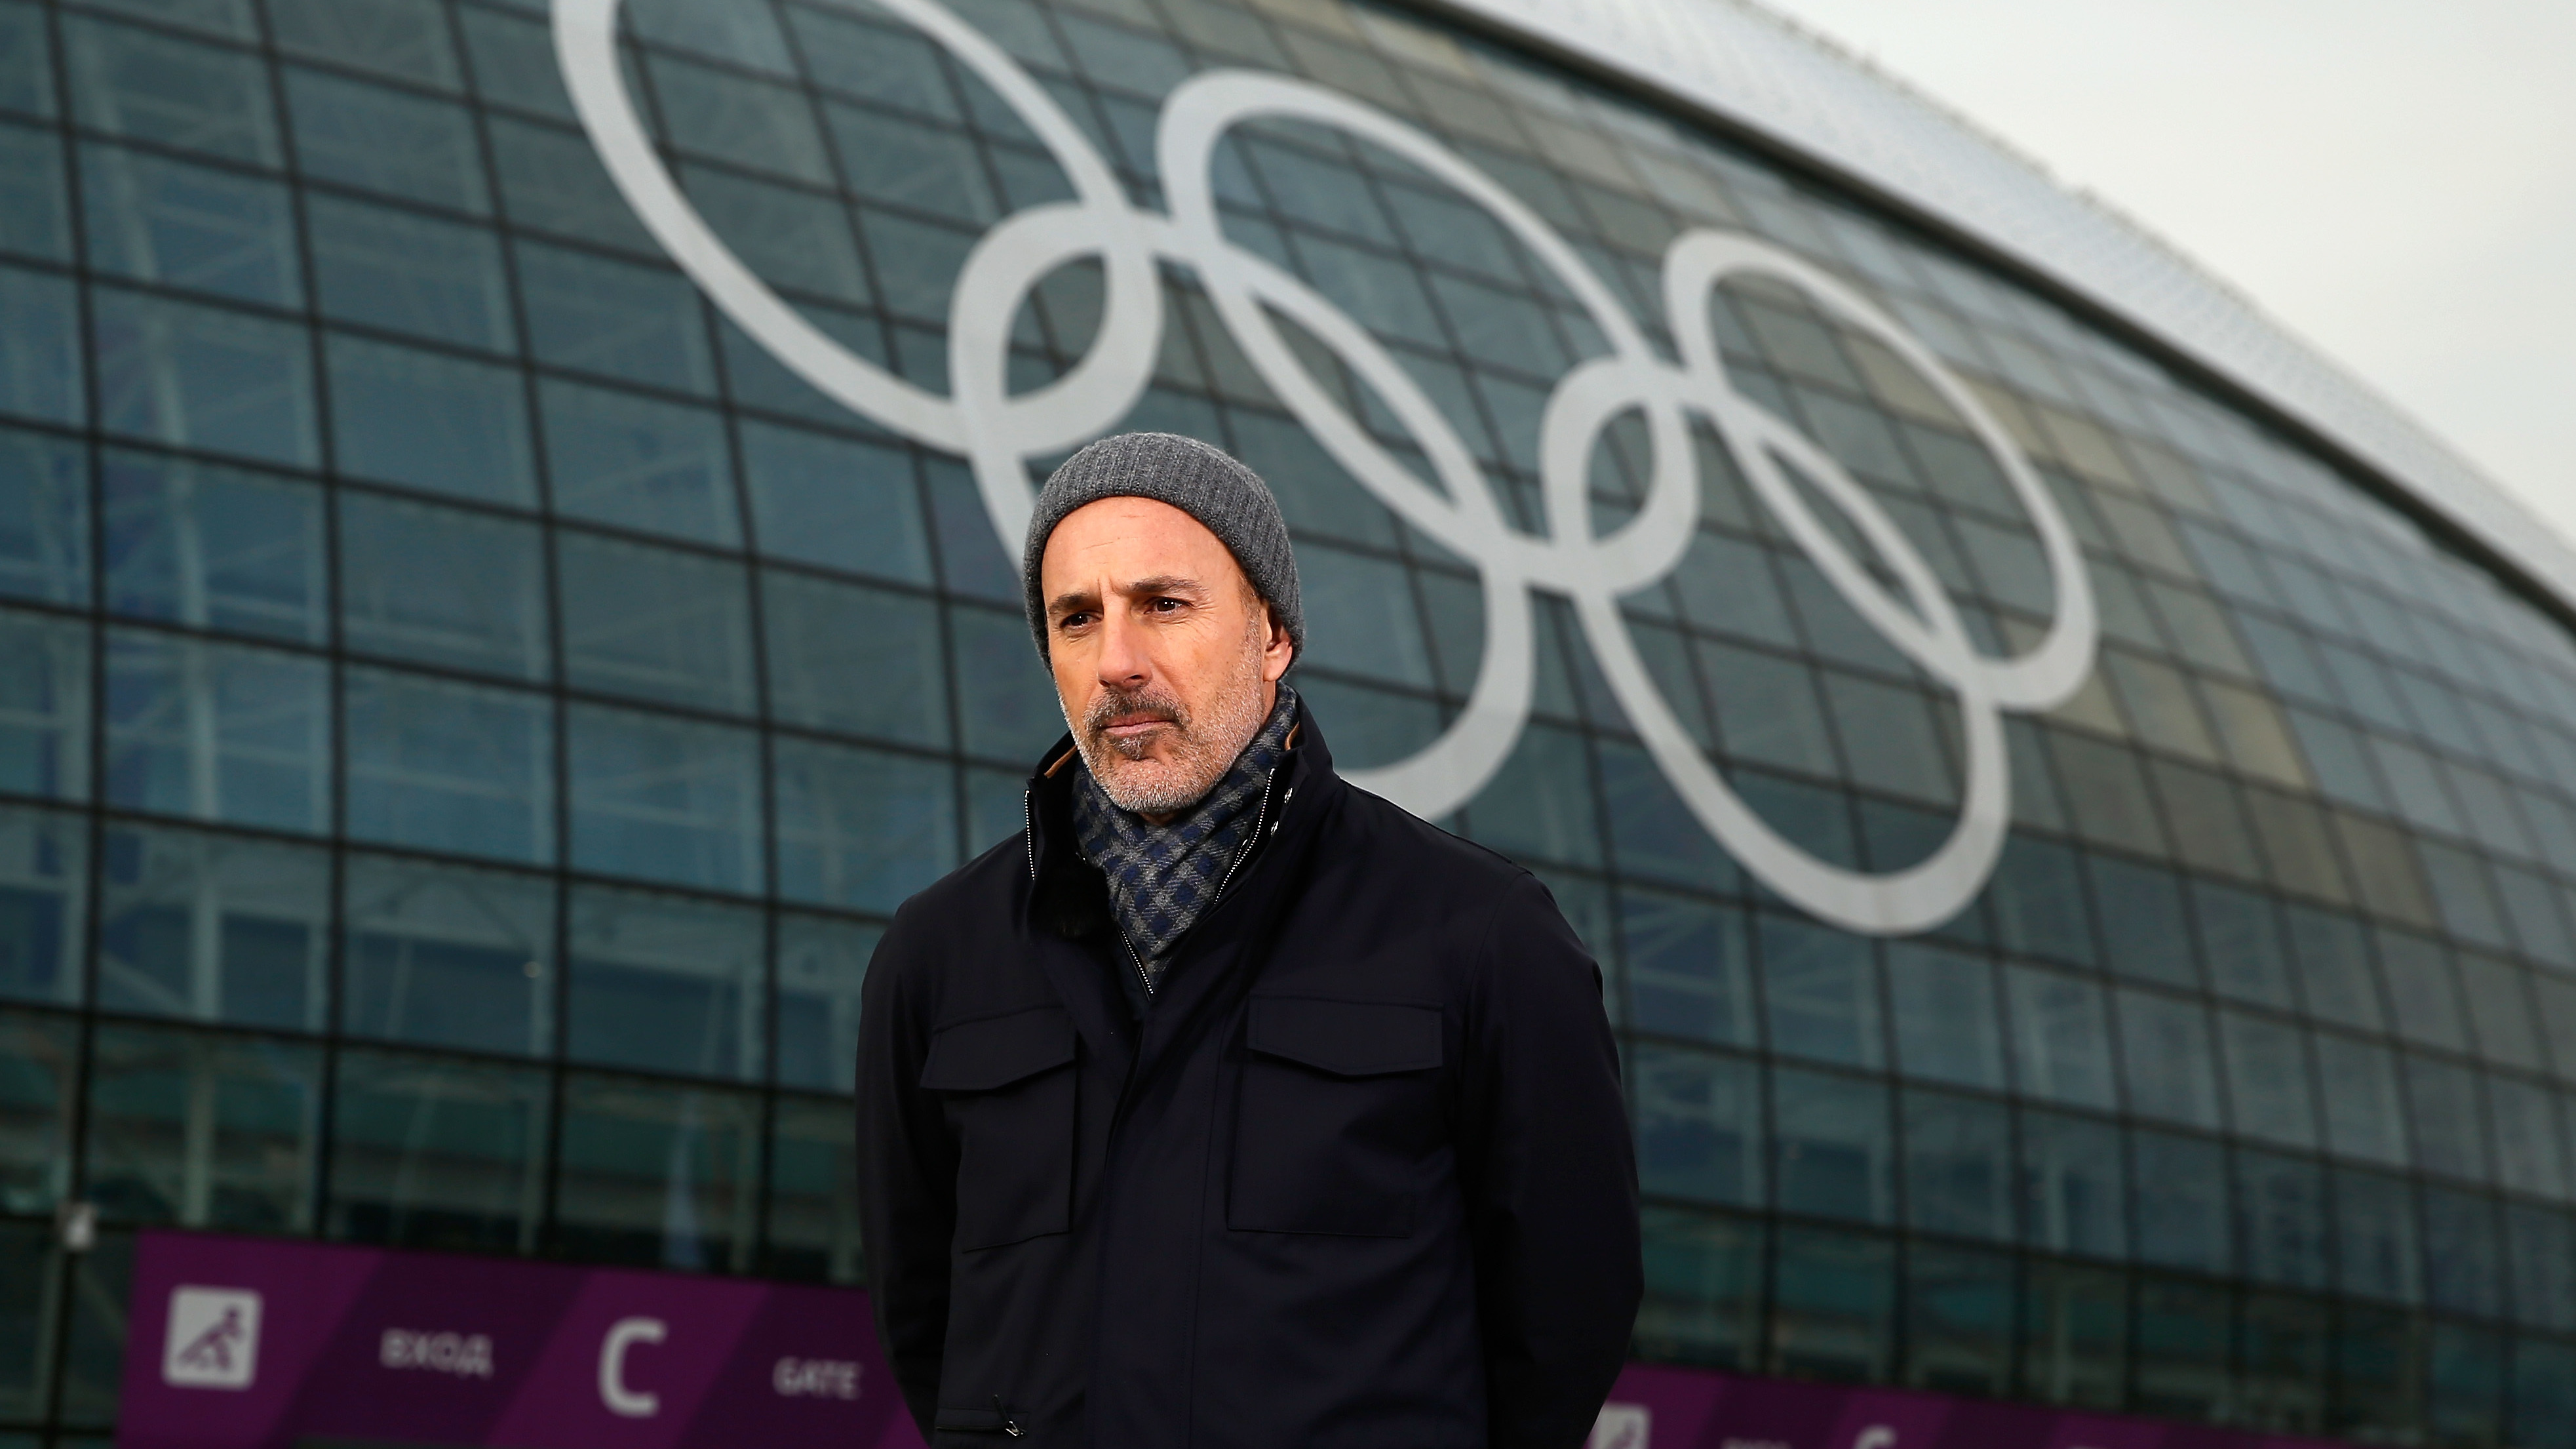 Matt Lauer, seen reporting for the NBC Today show at the 2014 Winter Olympics in Sochi, Russia, where the sexual assault described in Ronan Farrow's new book is alleged to have taken place.